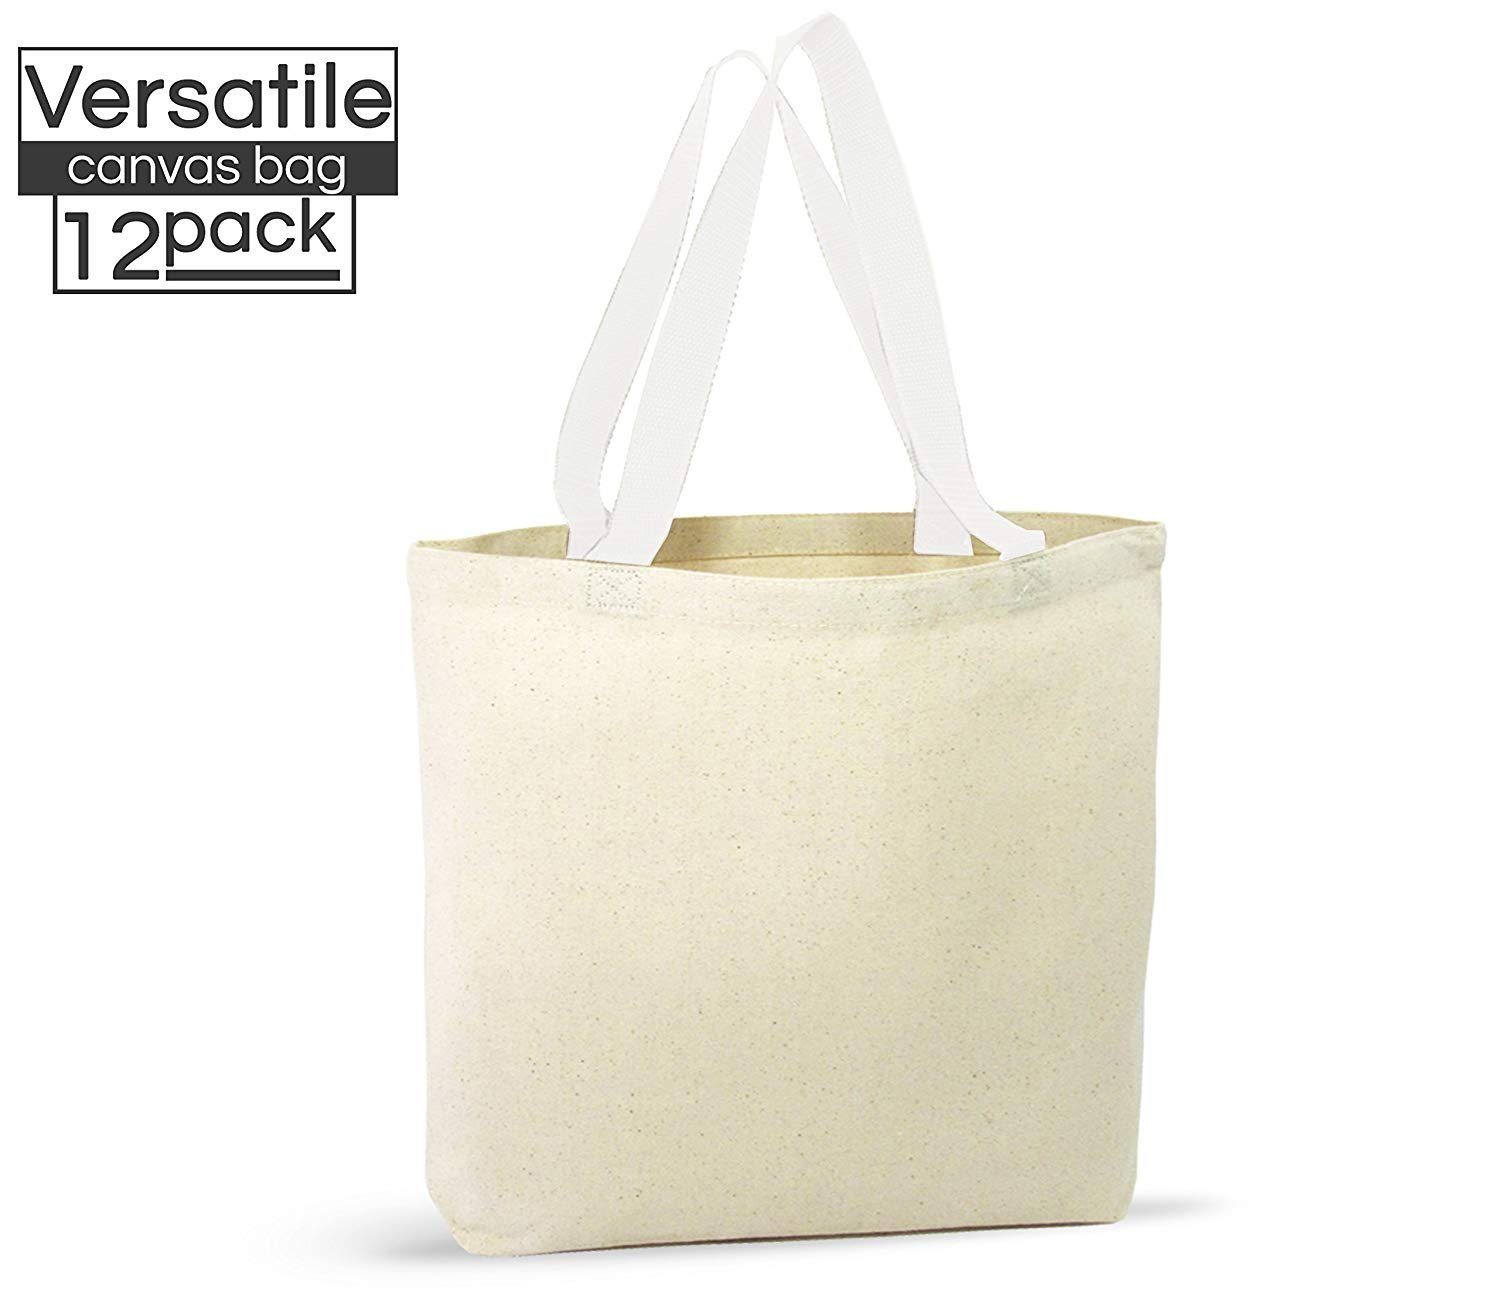 A 12 Pack Canvas Tote Bag